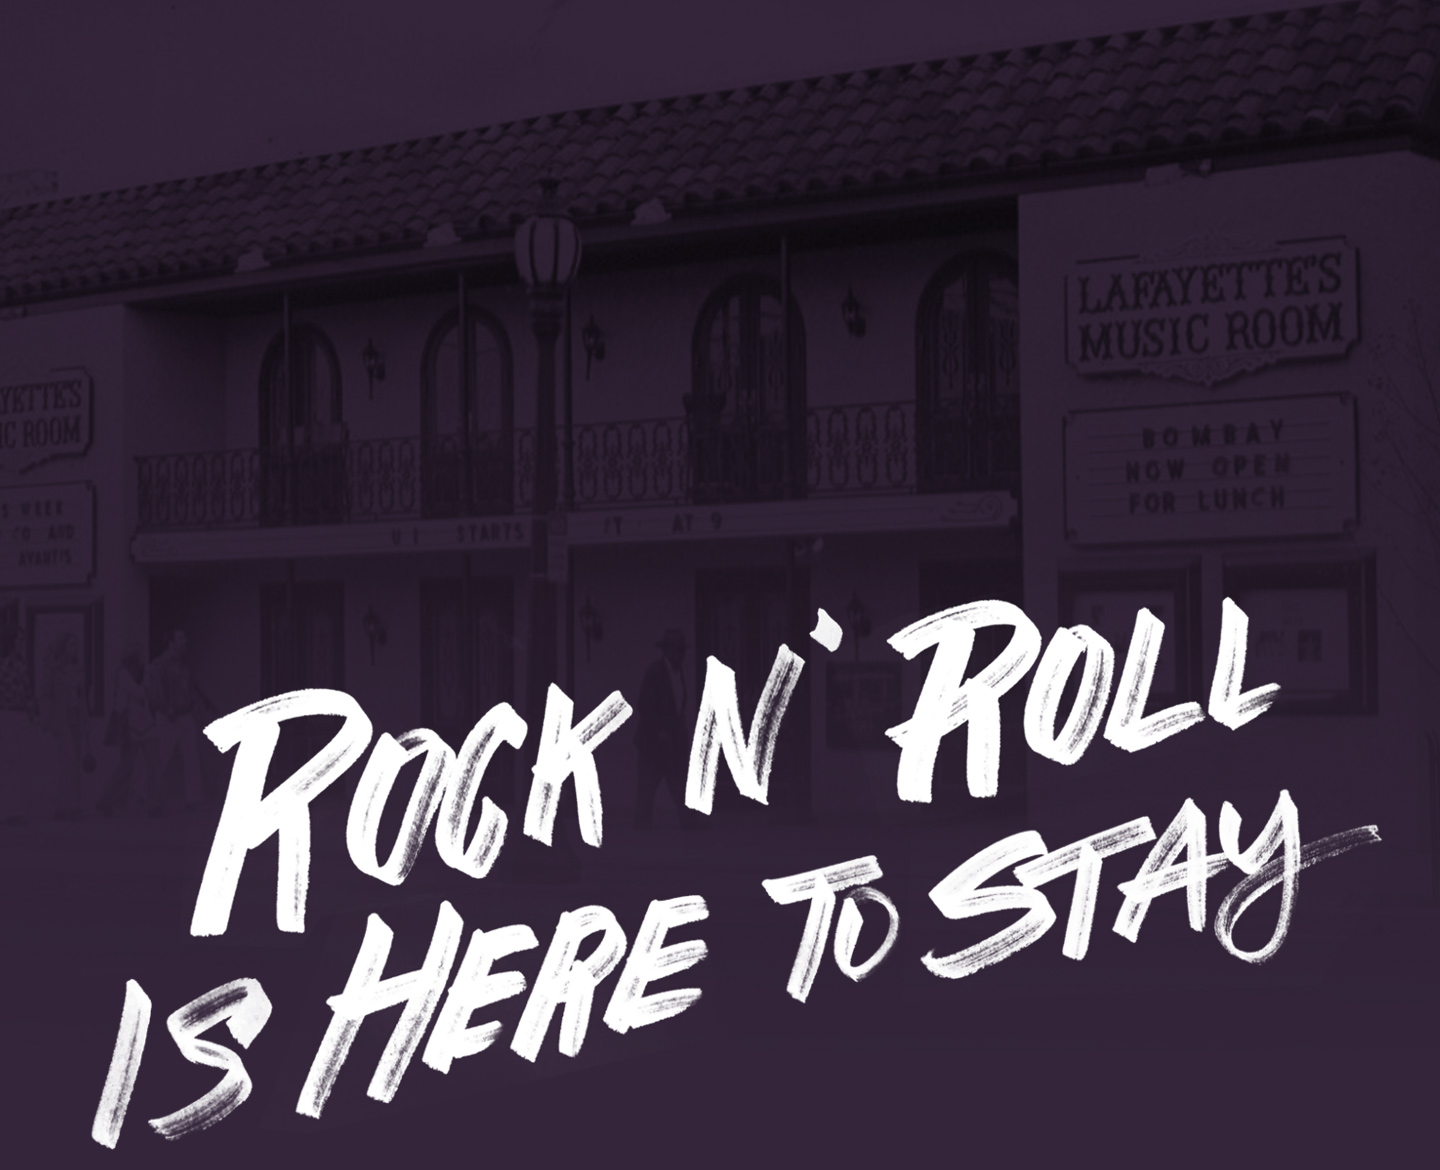 Rock 'n' roll is here to stay